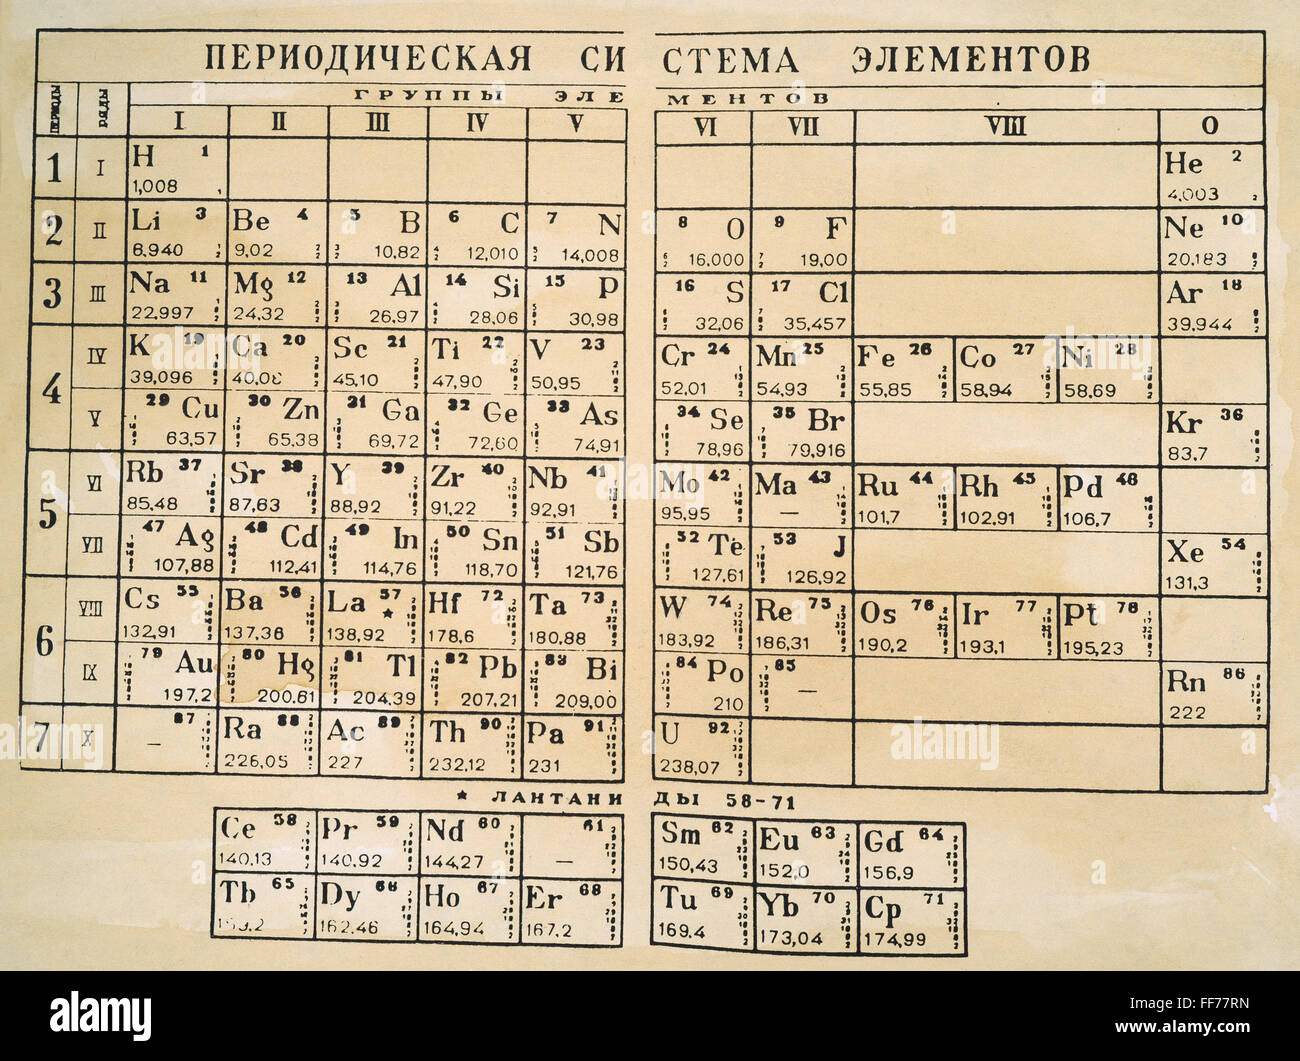 Periodic table 1925 ndmitri mendeleyevs periodic table in which periodic table 1925 ndmitri mendeleyevs periodic table in which the elements are arranged by atomic weight in groups of related chemical and physical urtaz Image collections